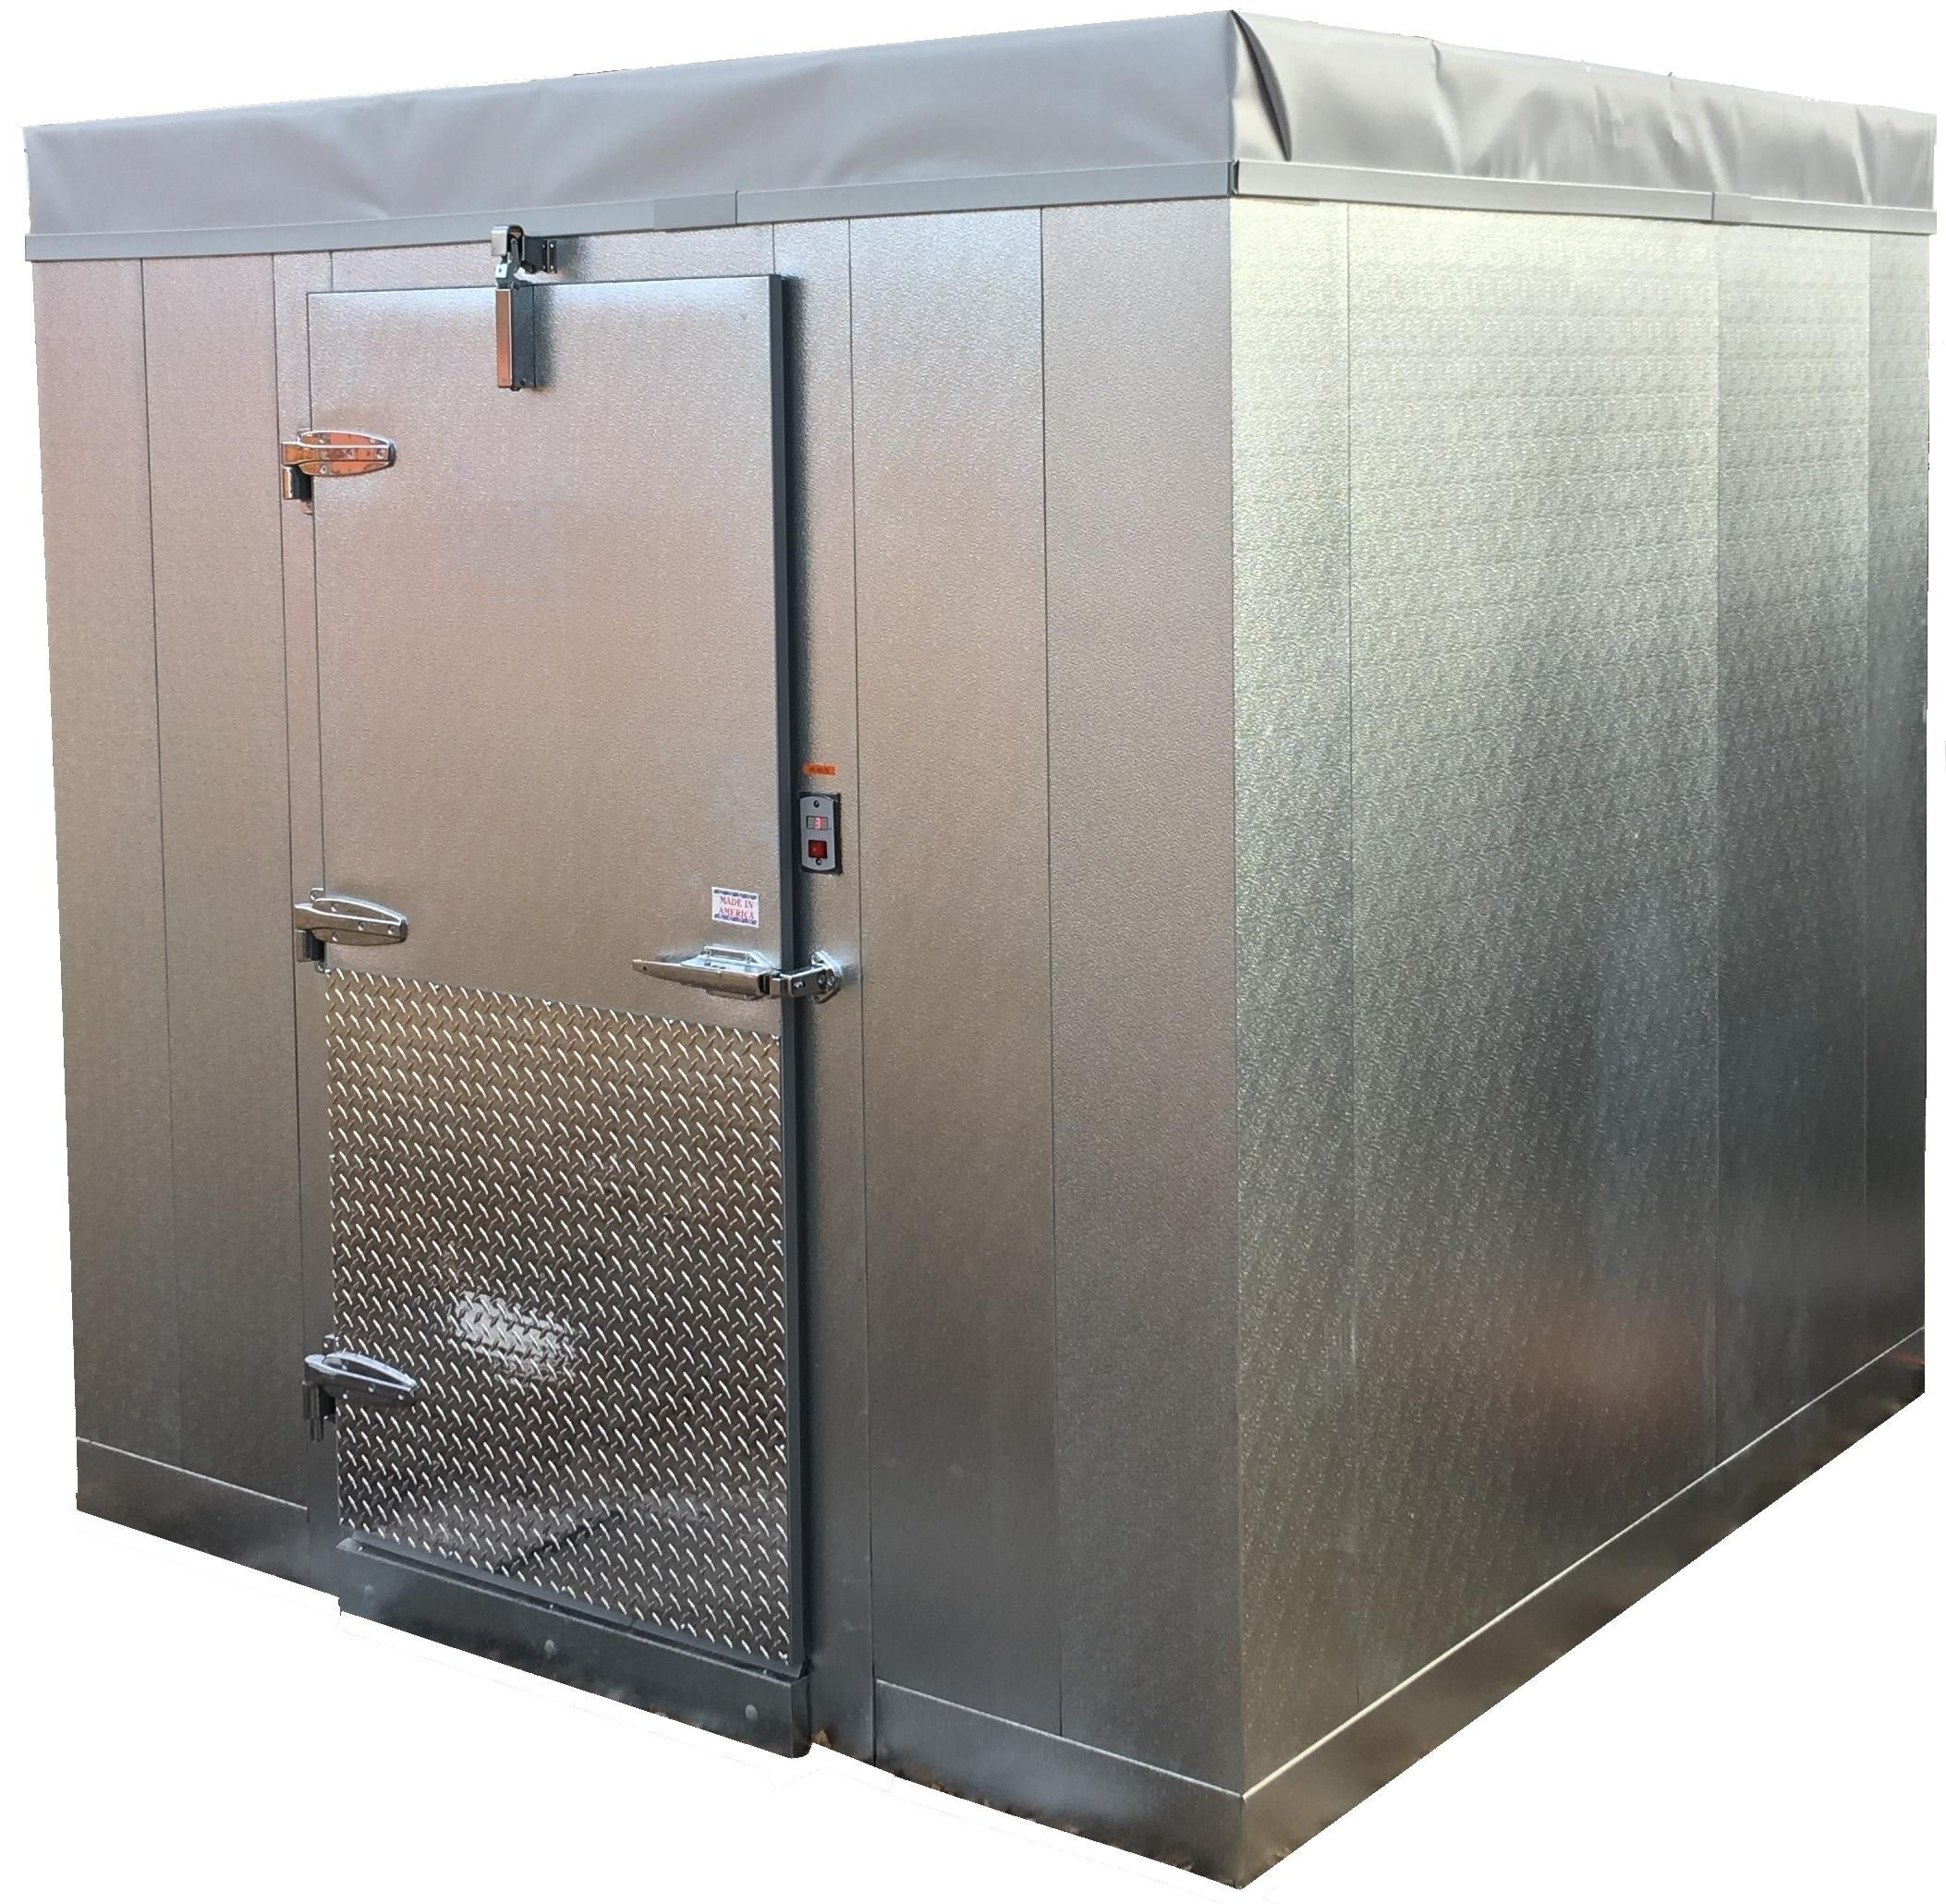 Coolbot Walk In Cooler Front View Walkin Cooler Walk In Freezer Cold Room